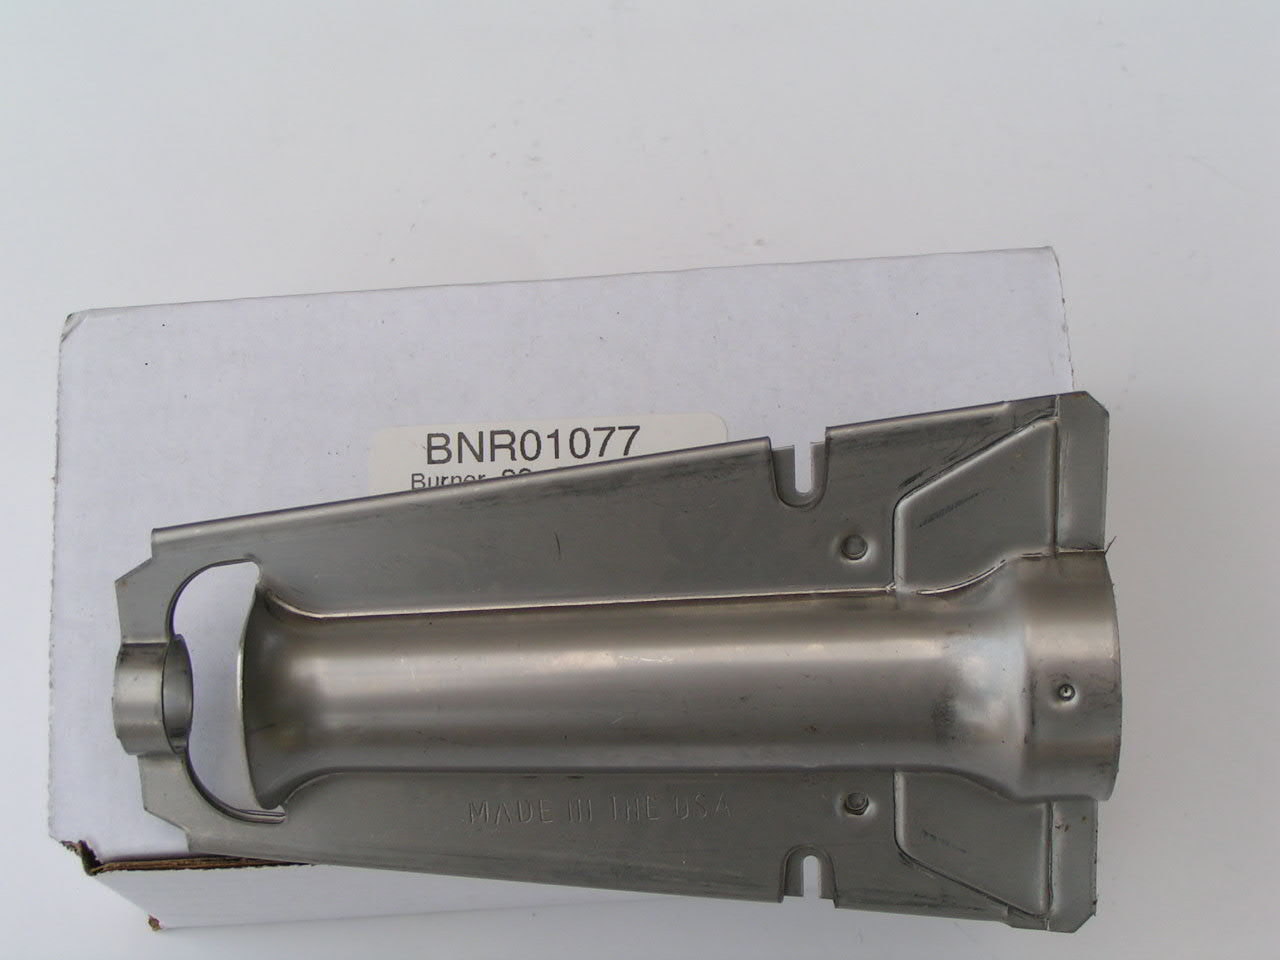 hight resolution of trane gas furnace burner bnr01077